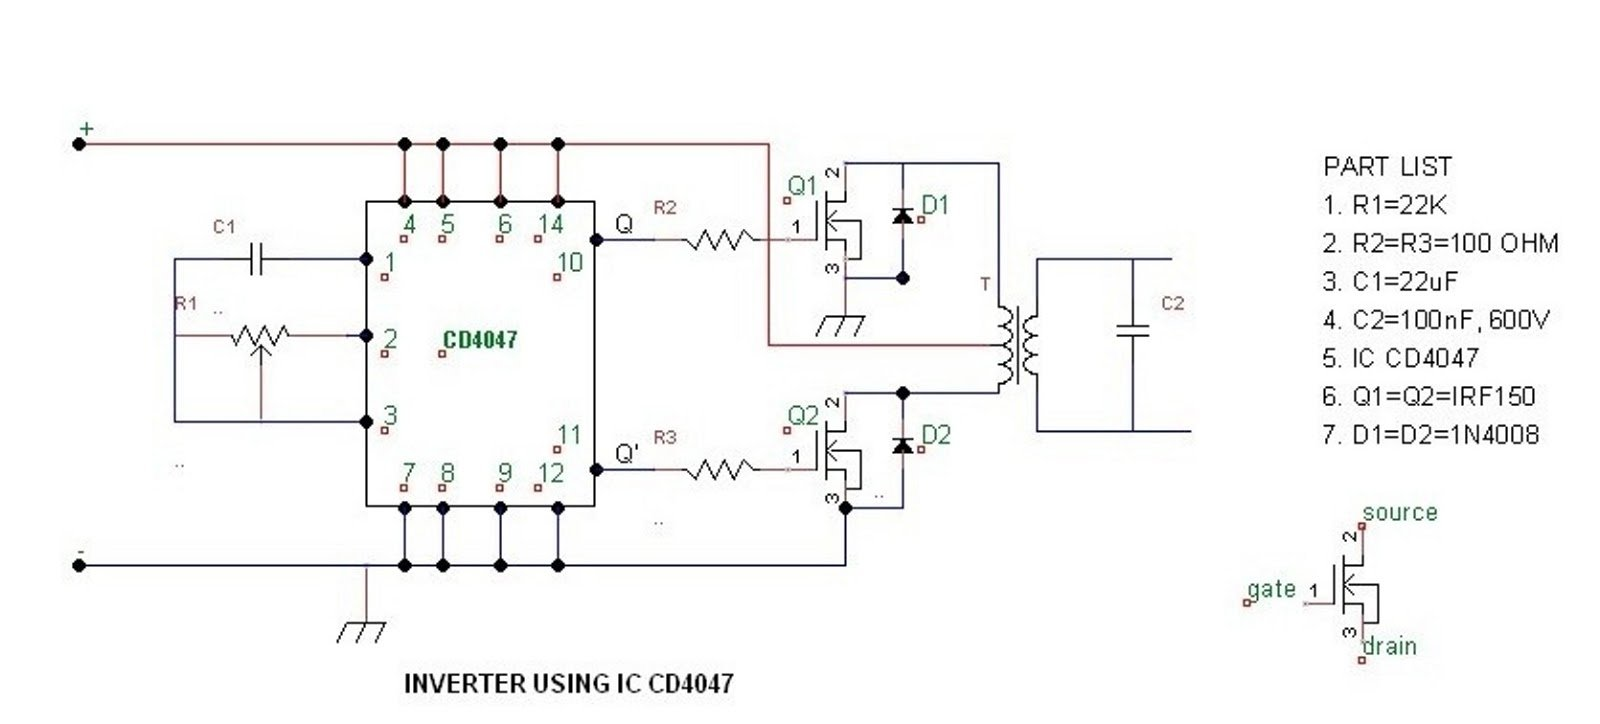 Simple 100 watt to 500 watt Inverter Circuit